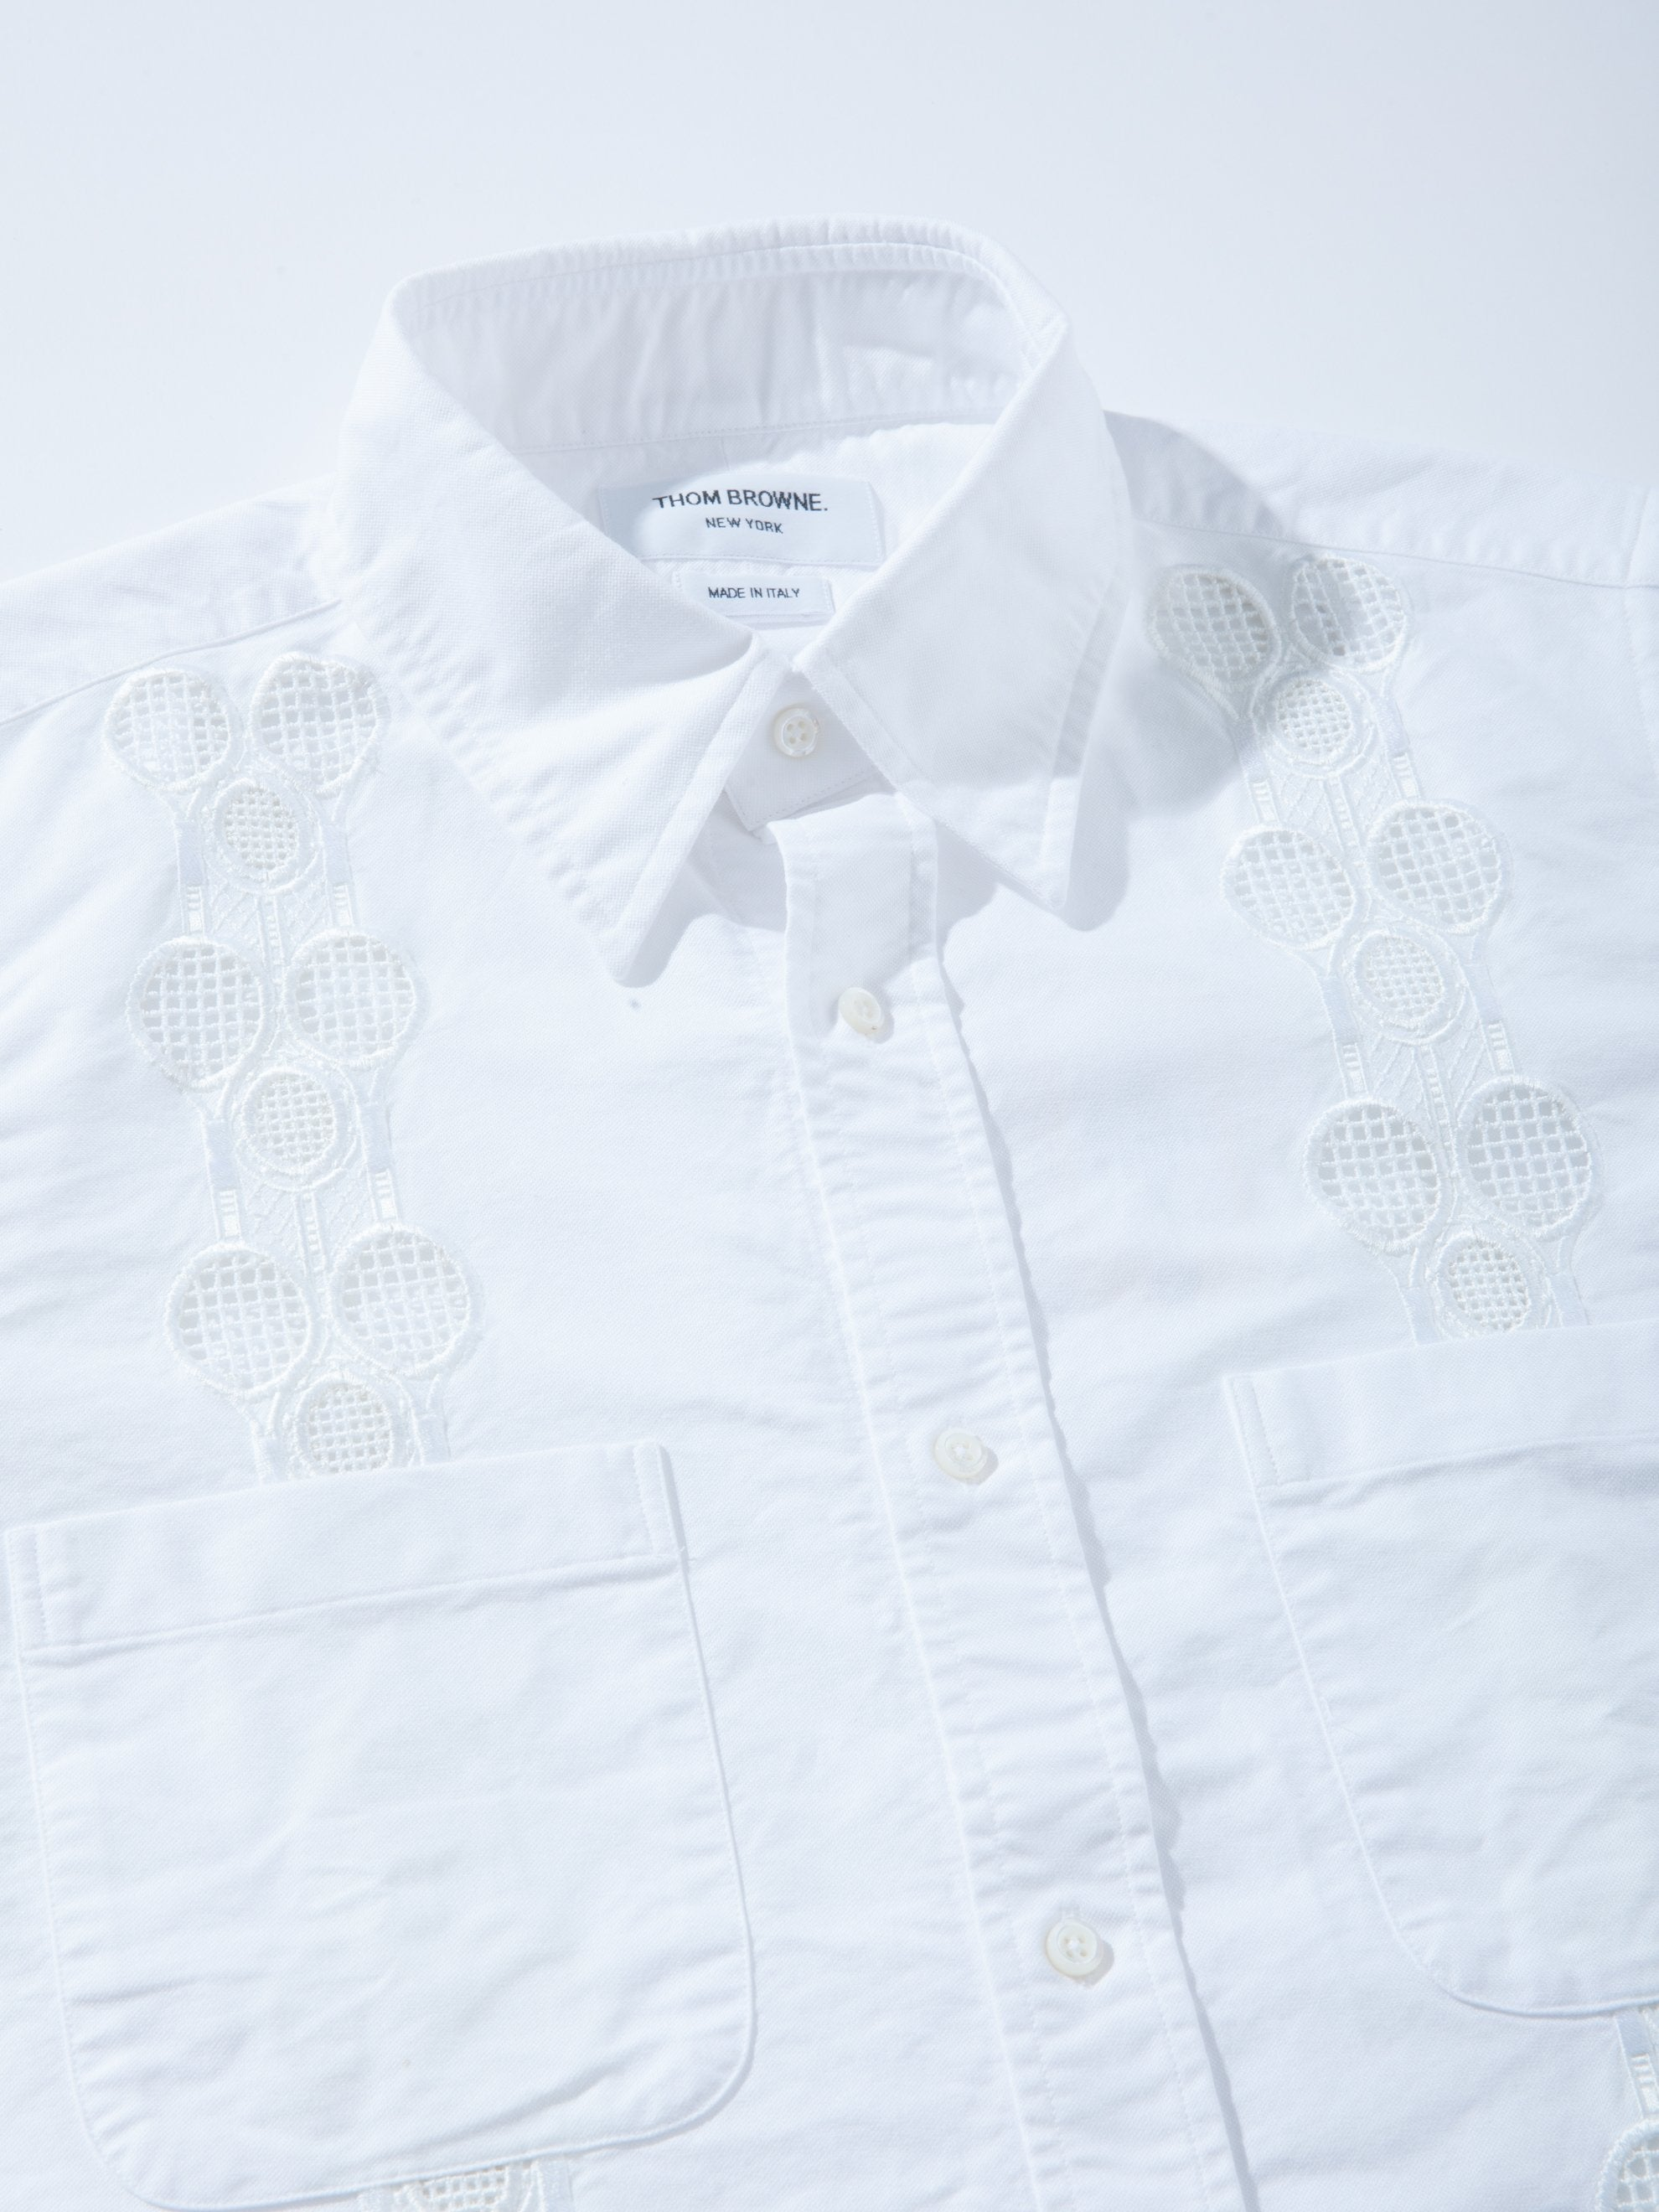 White Cuban Shirt W/ Tennis Racket Embroidery 2